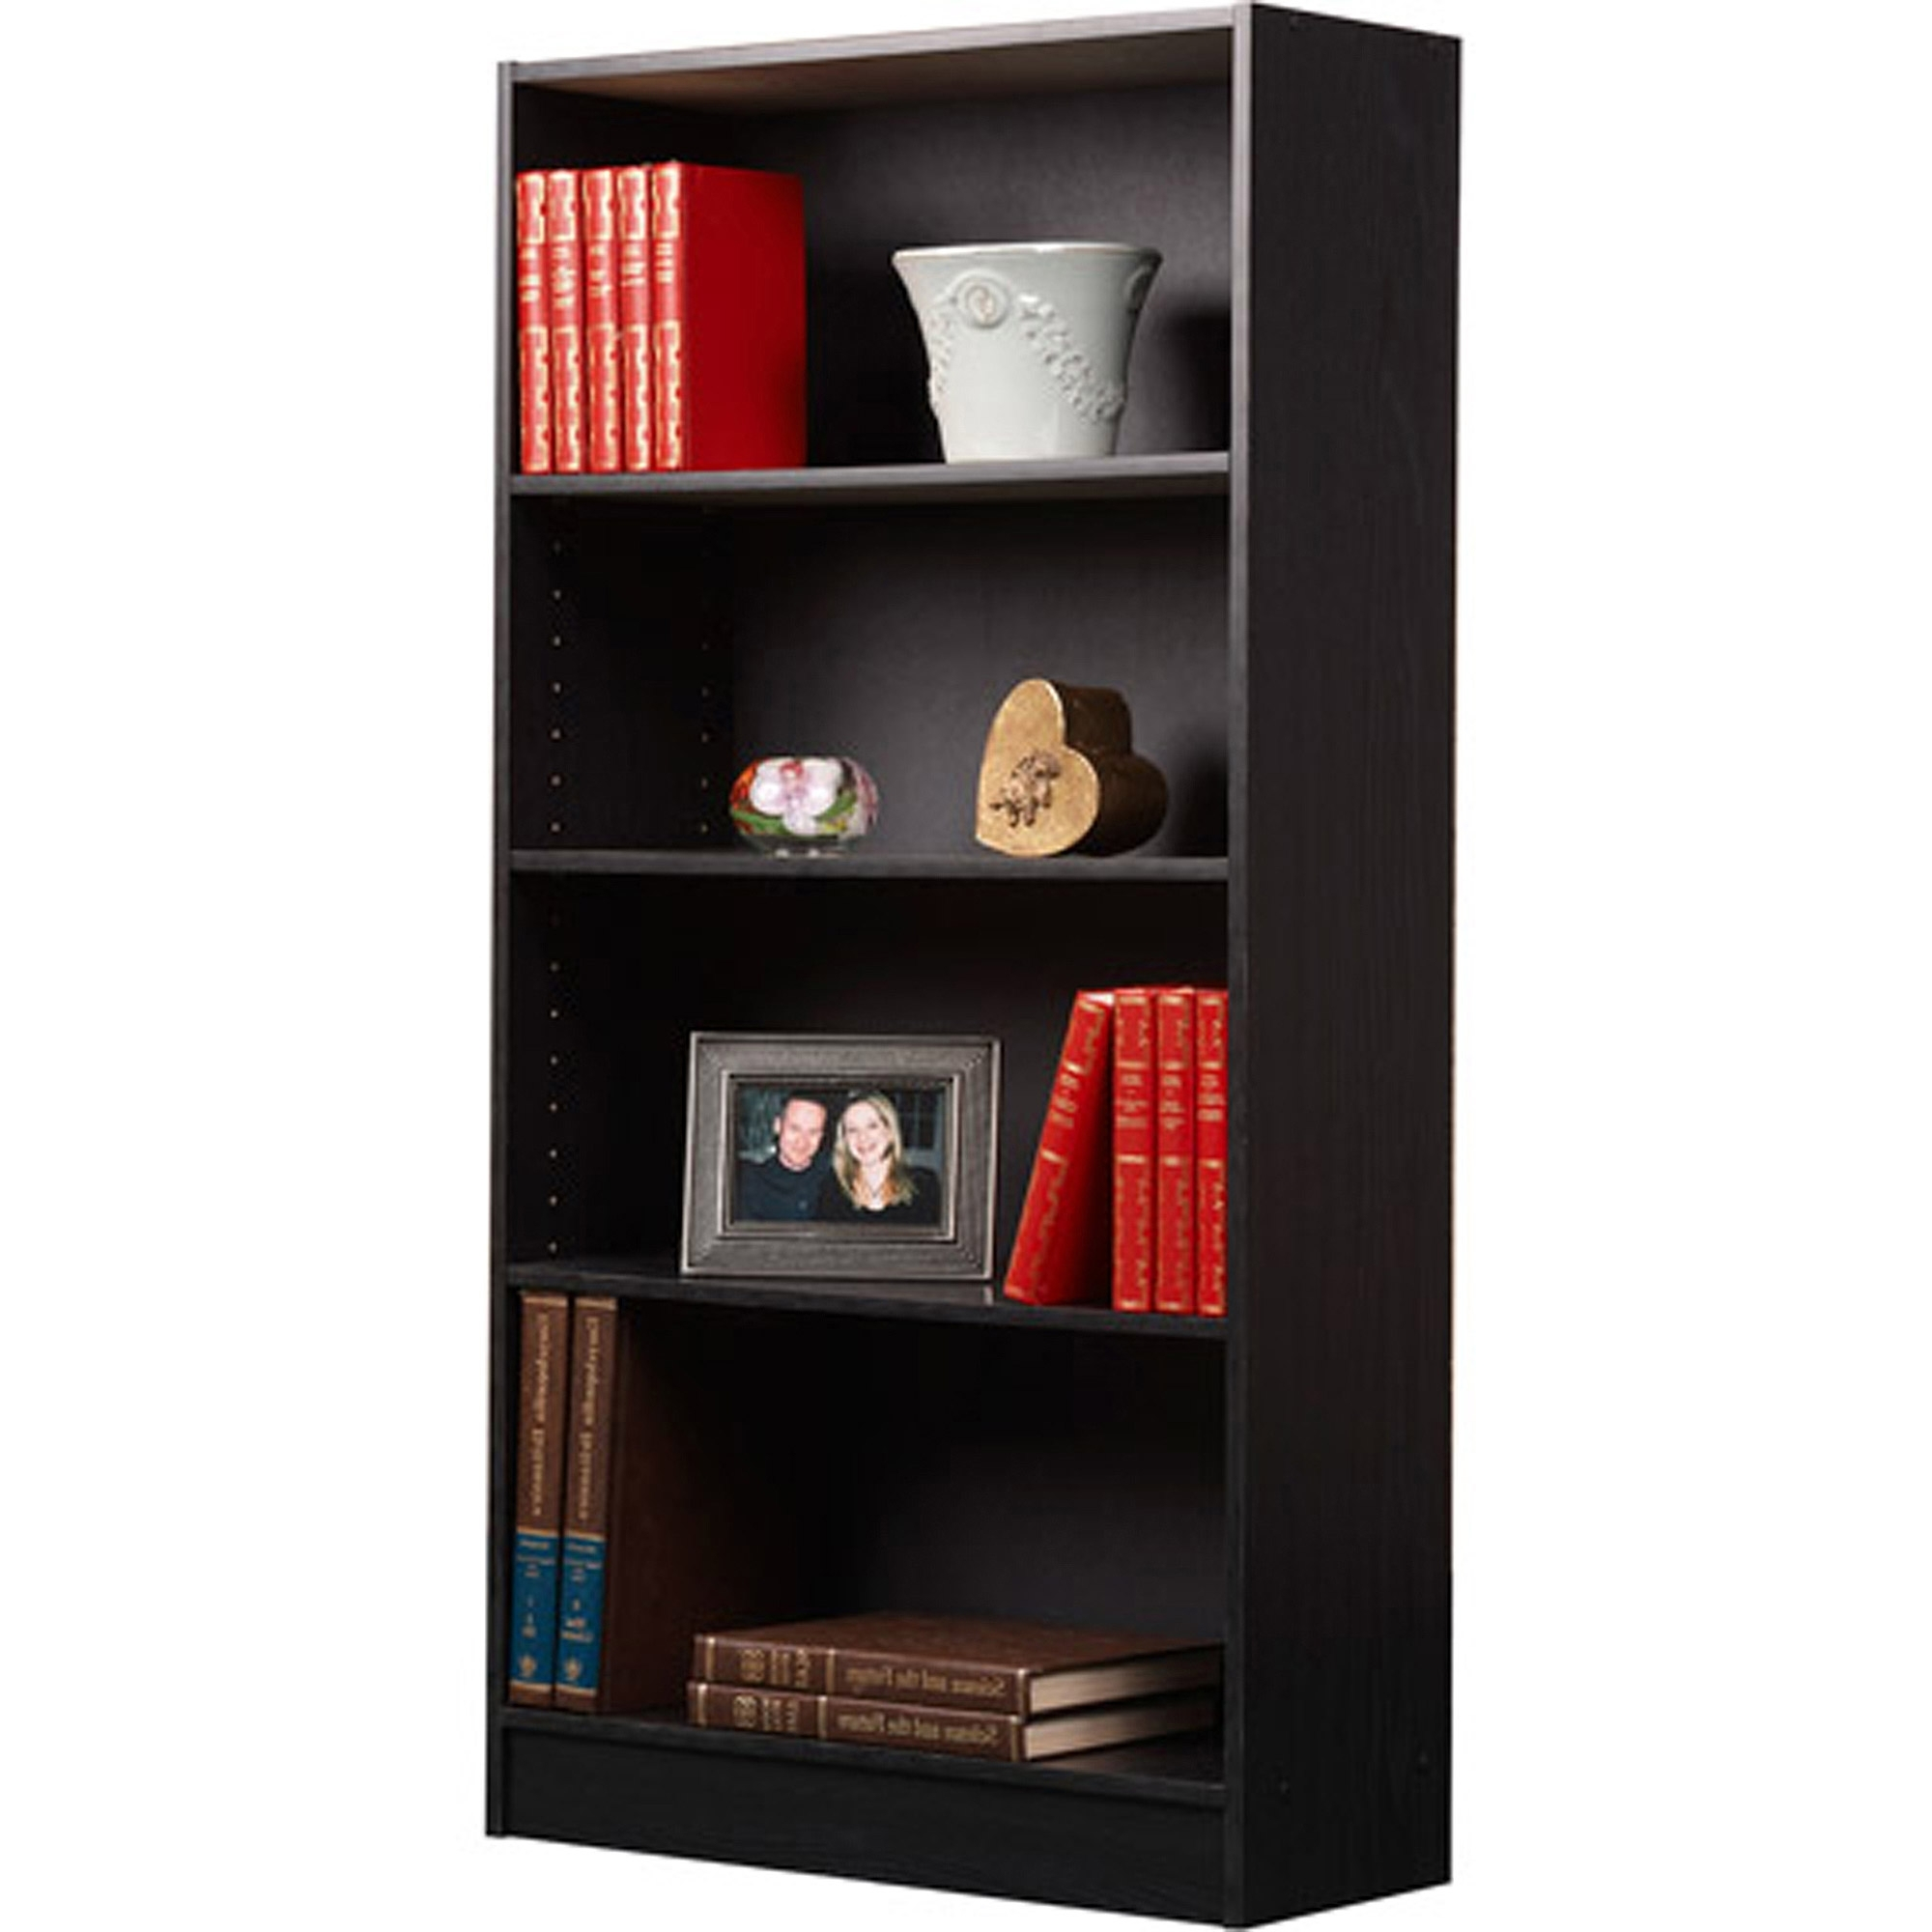 Fashionable Black Bookcases Walmart With Orion 4 Shelf Bookcases, Set Of 2 – Walmart (View 13 of 15)